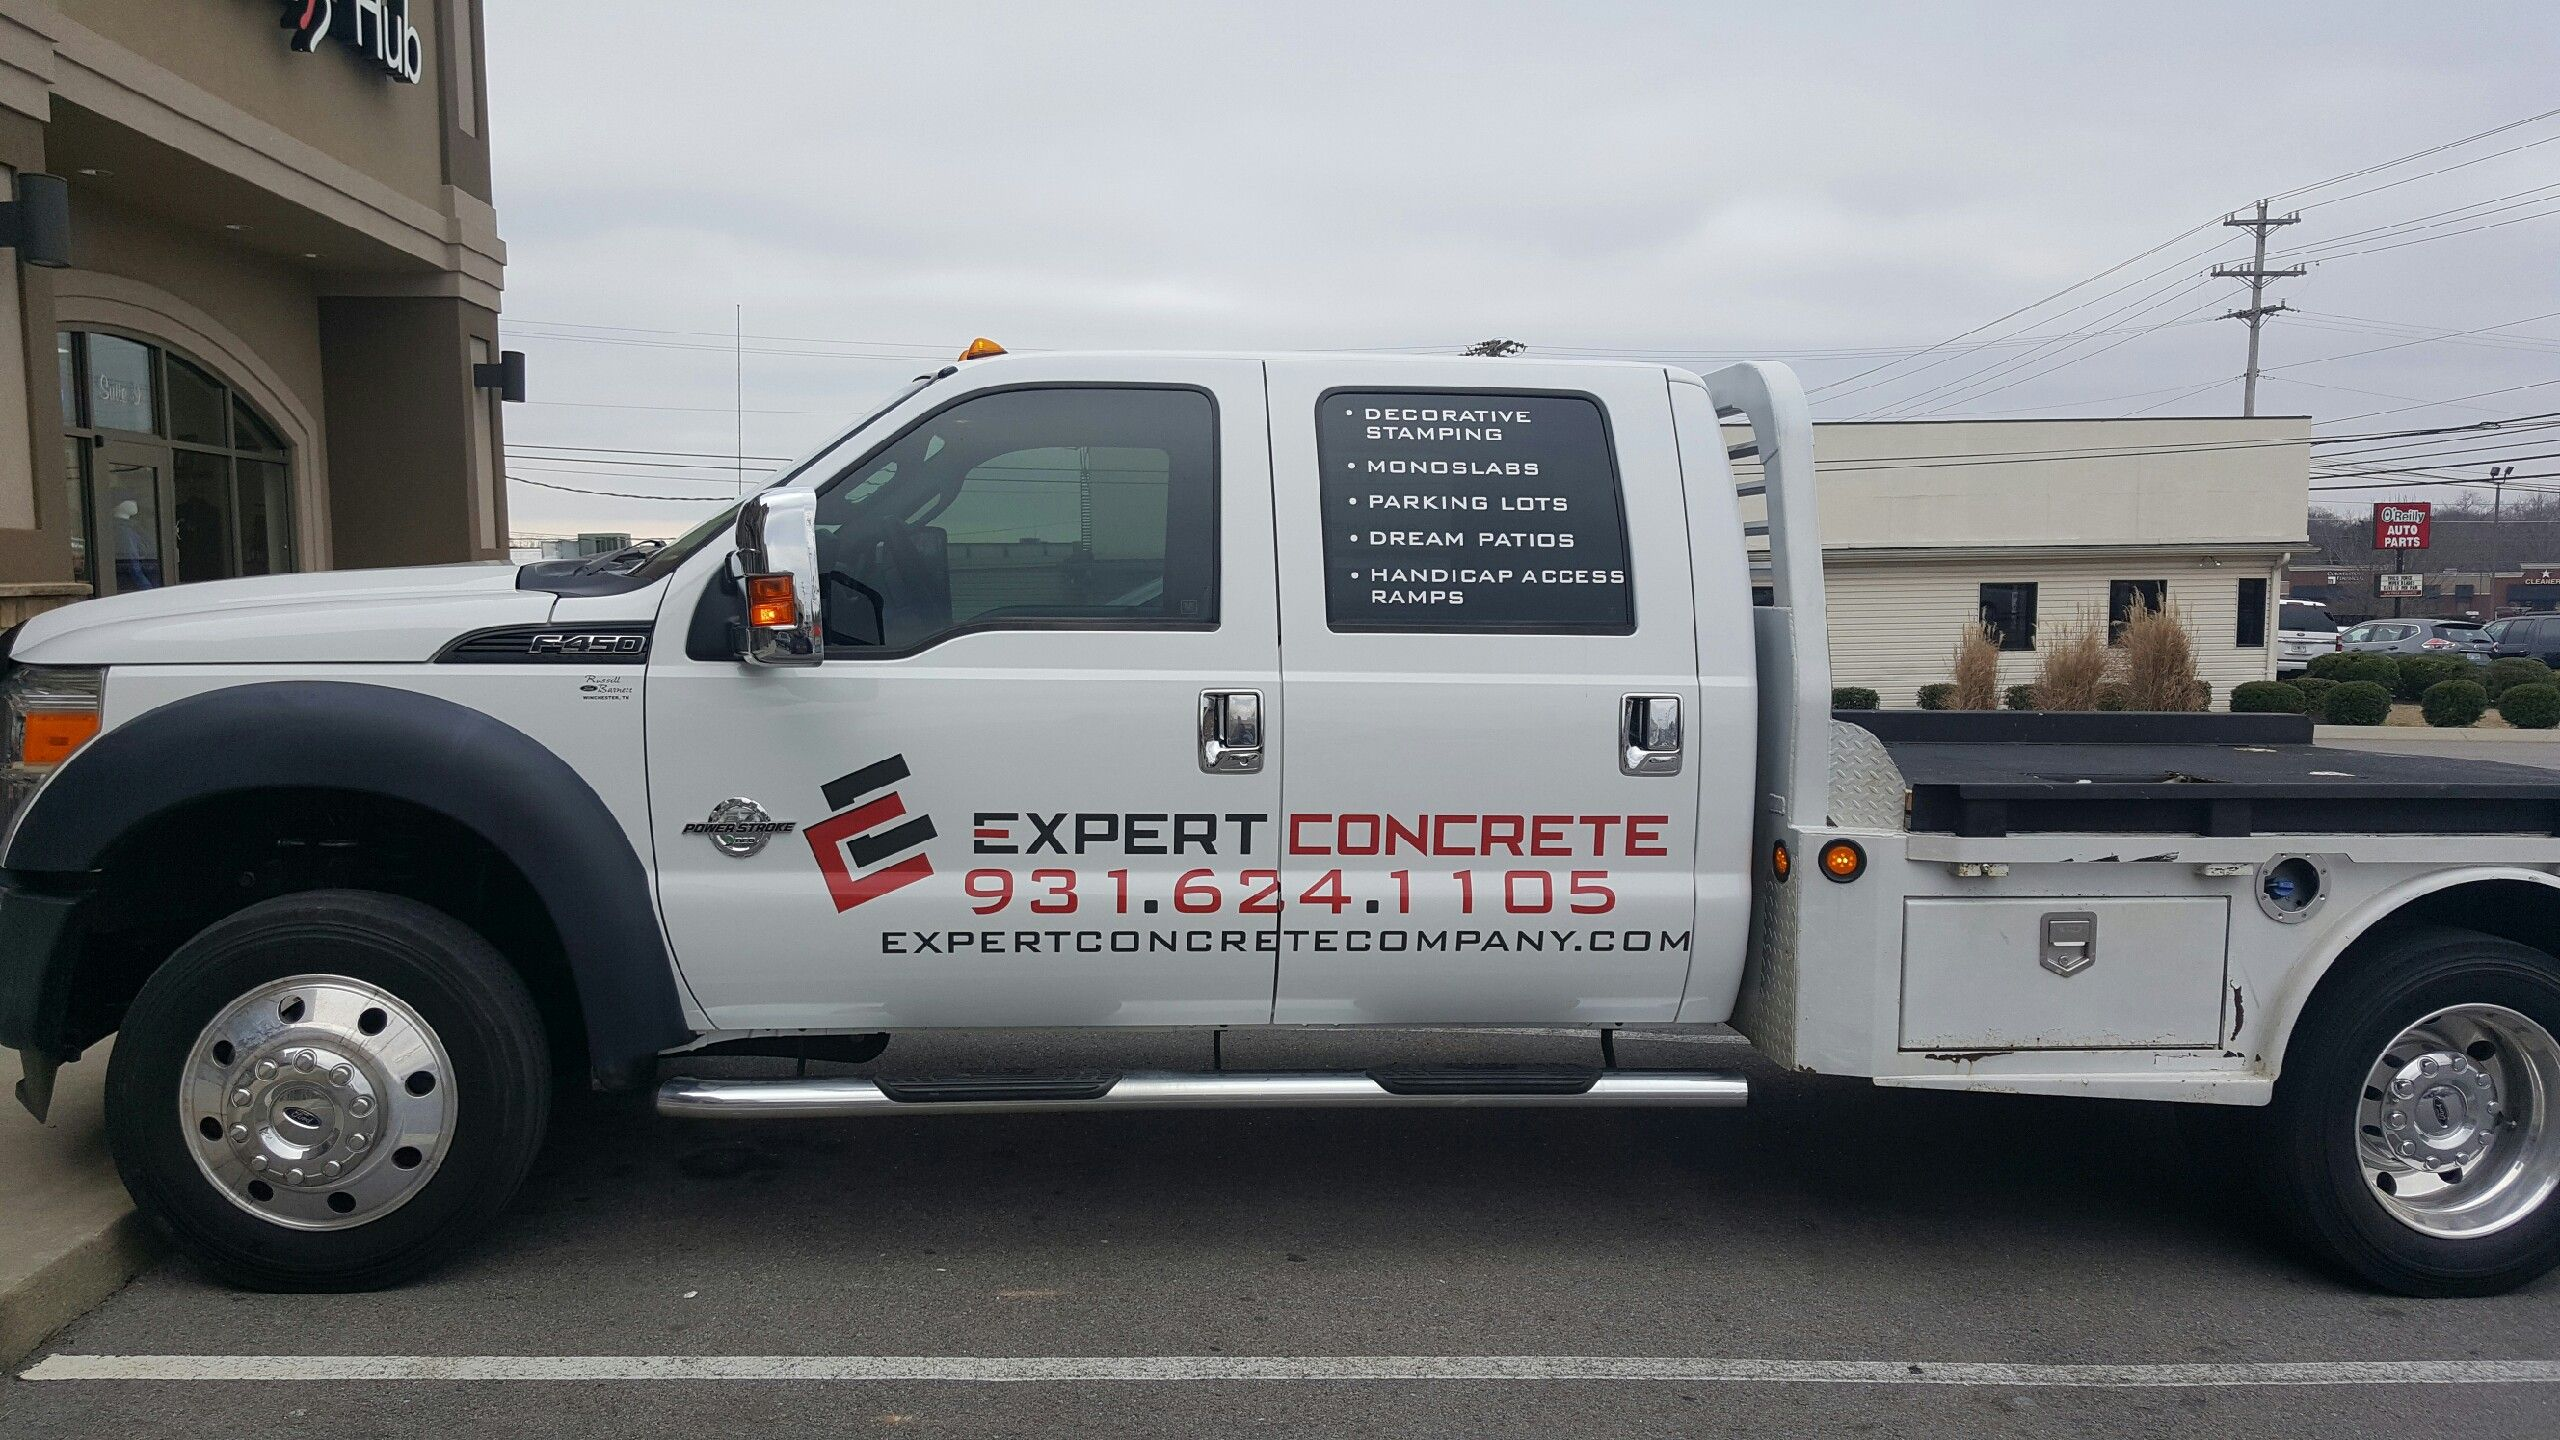 Pin by FASTSIGNS Clarksville on Vehicle Wraps/Decals